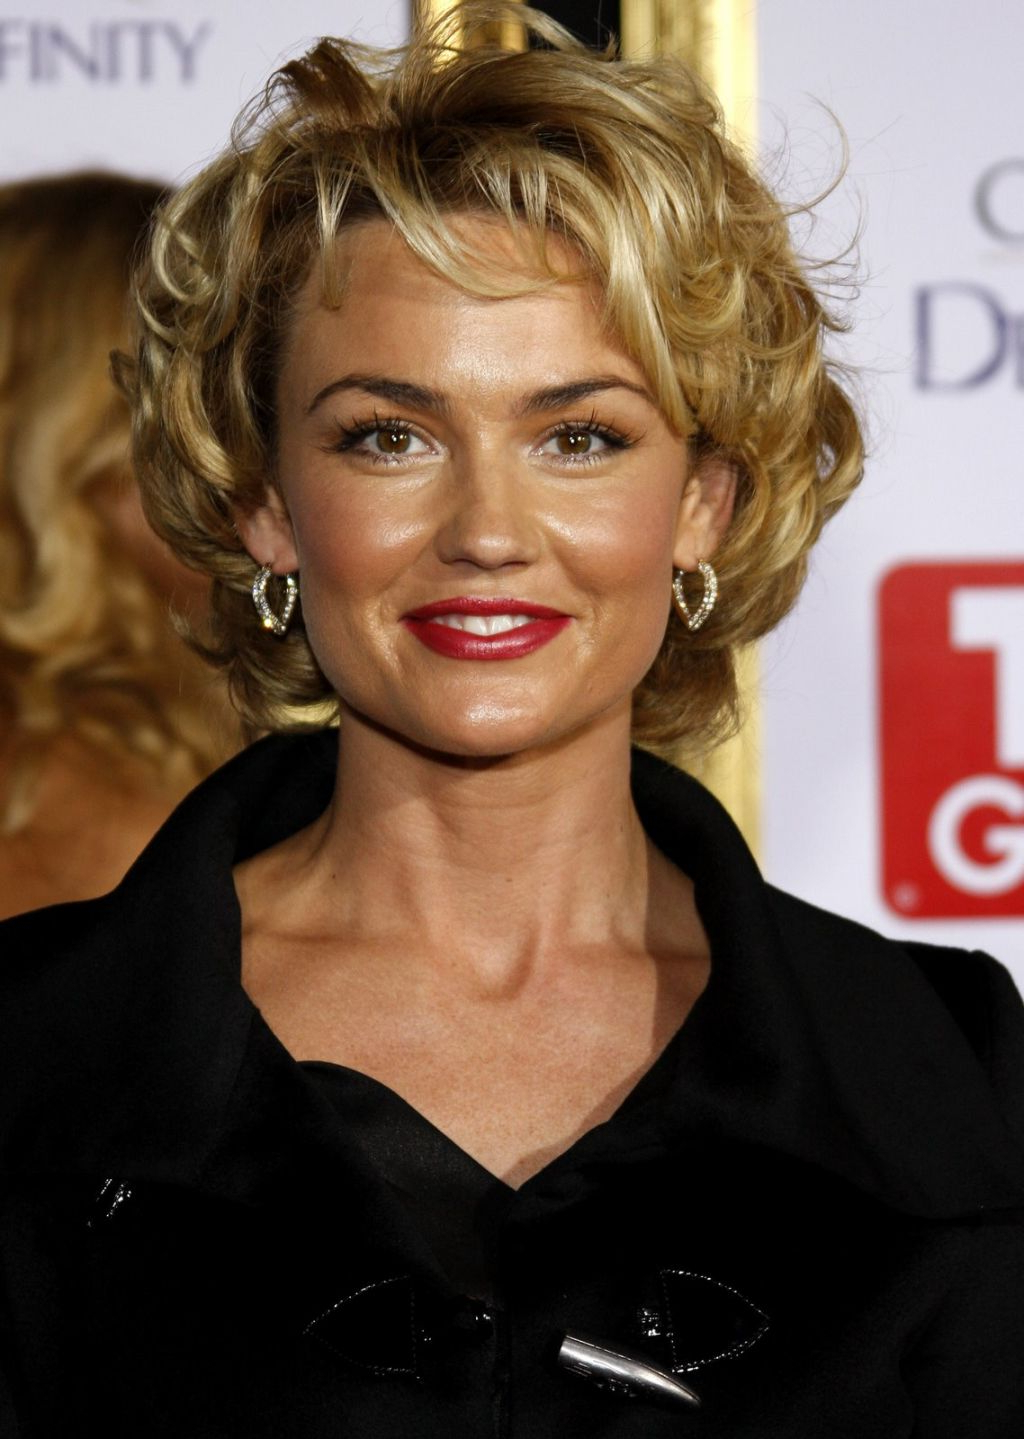 Short Haircuts For Fine Hair Over 40 – Hairstyle For Women & Man Pertaining To Short Haircuts For Women Over 40 With Curly Hair (View 3 of 25)